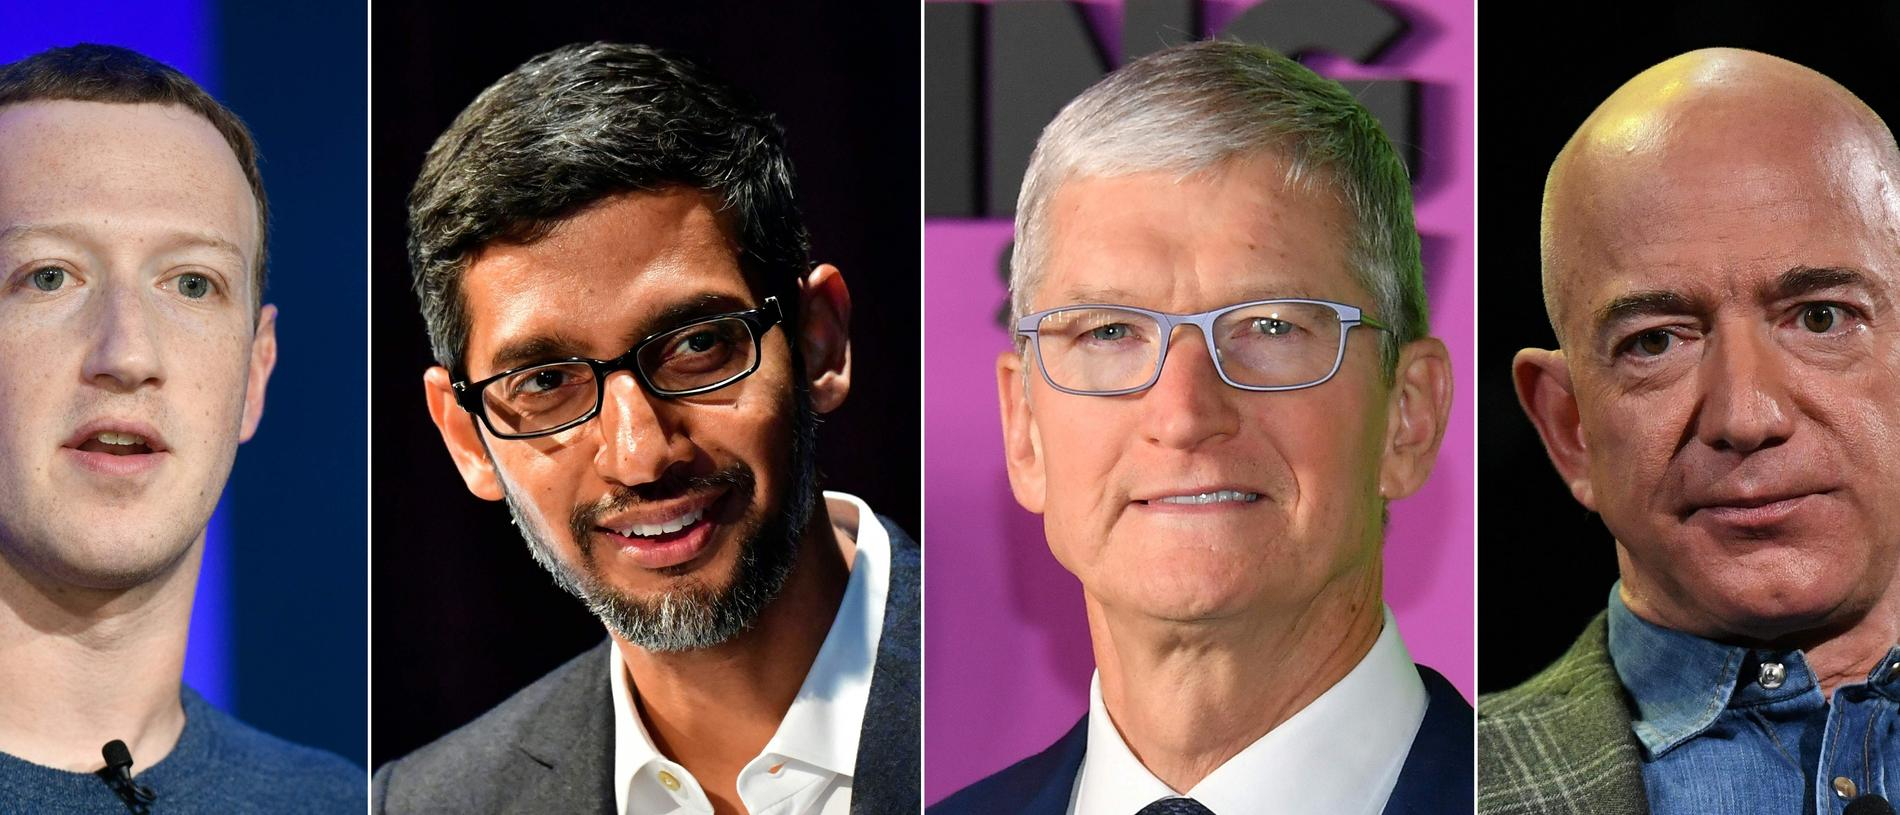 Facebook founder Mark Zuckerberg, Google CEO Sundar Pichai, Apple CEO Tim Cook and Amazon founder Jeff Bezos all testified to Congress in July. Picture: AFP